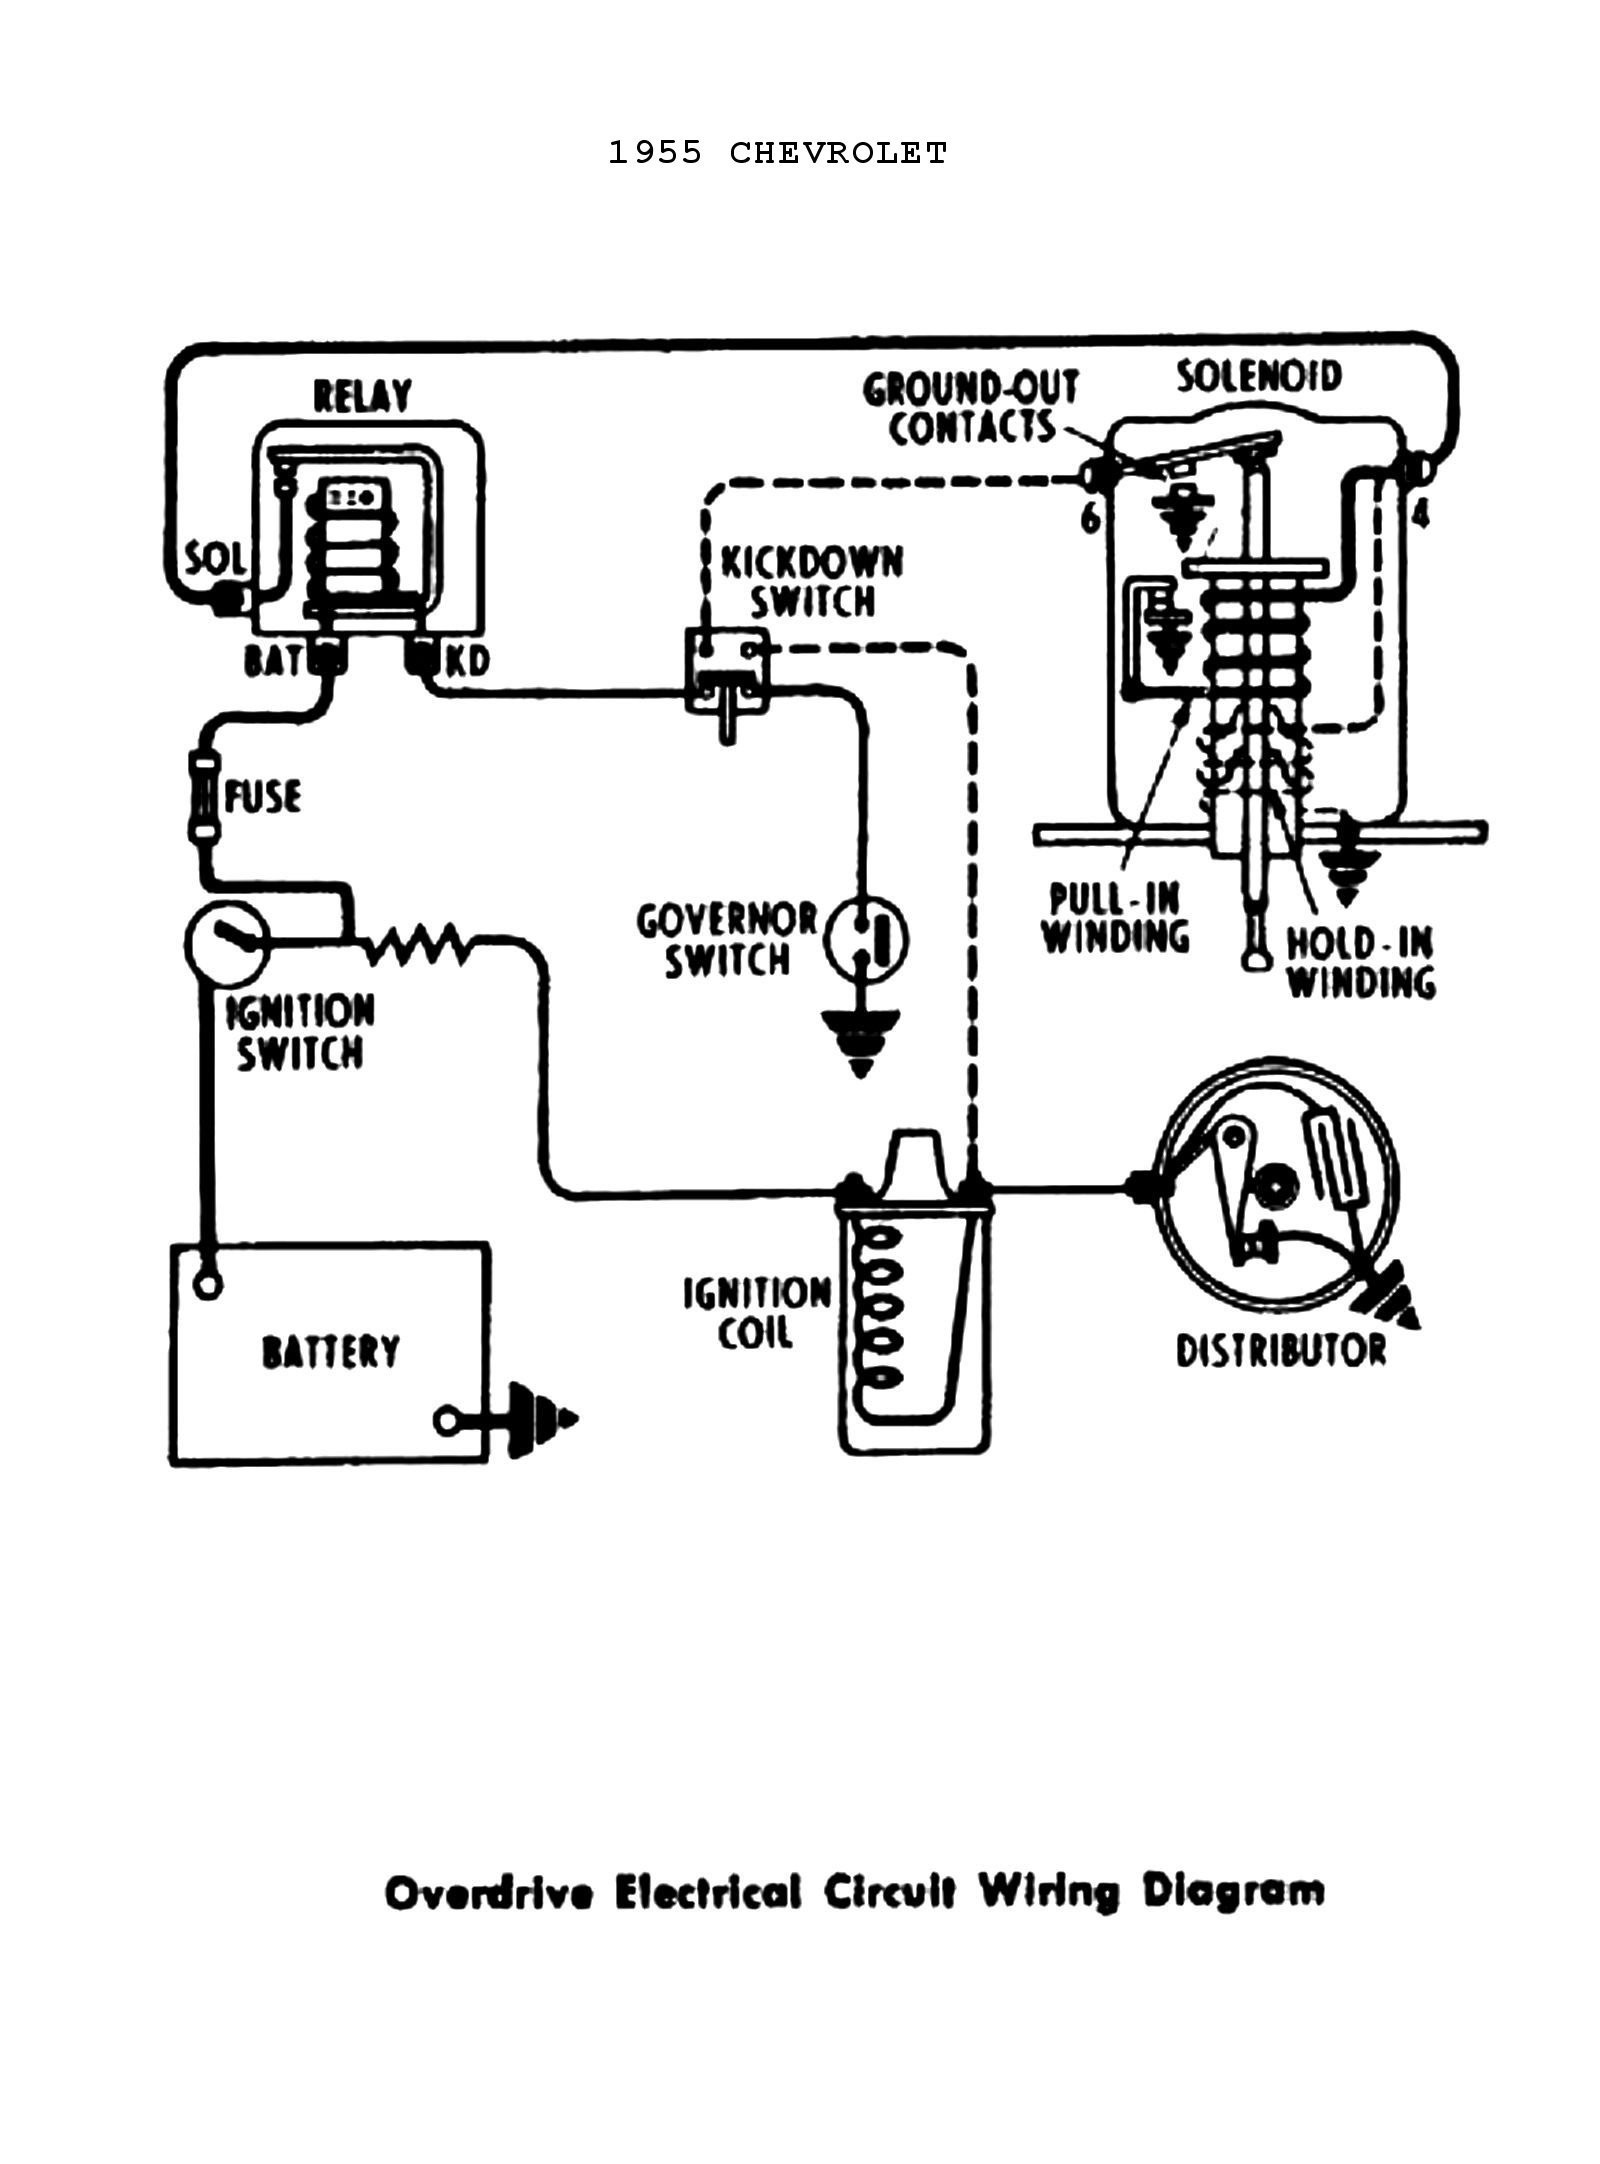 Car Ignition Switch Wiring Diagram Wiring Diagram Gm Ignition Switch Fresh Car Ignition System Wiring Of Car Ignition Switch Wiring Diagram